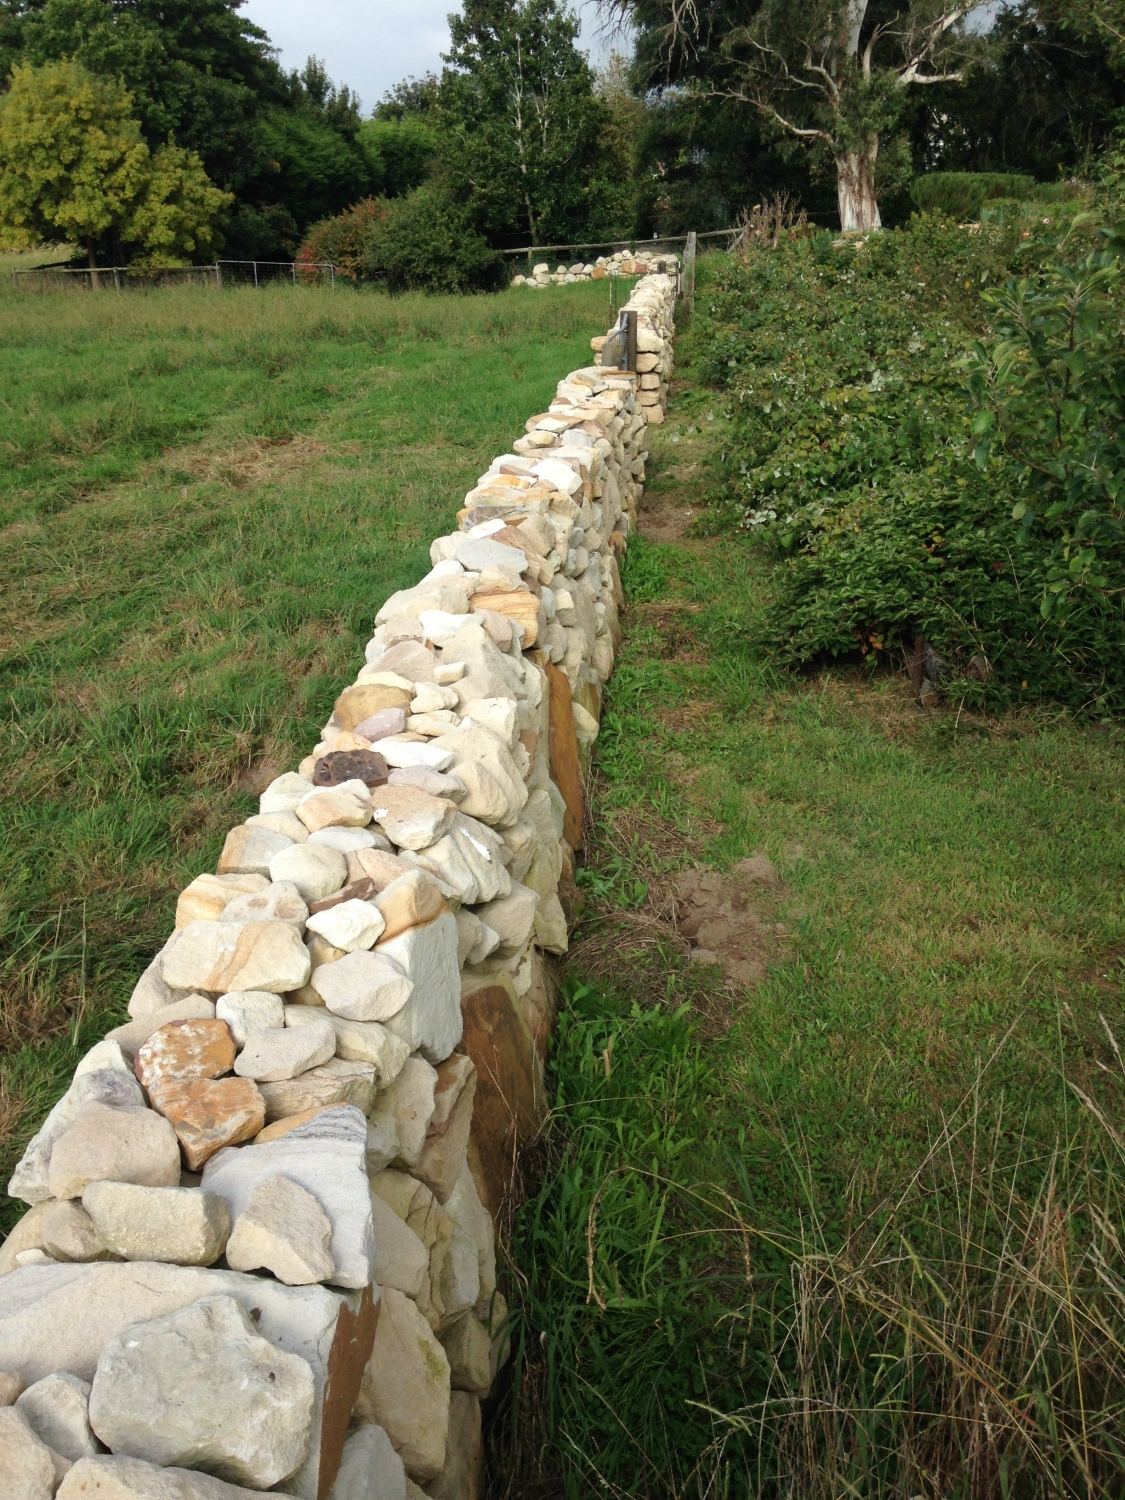 Ashton Park dry stone wall after removing wooden fence